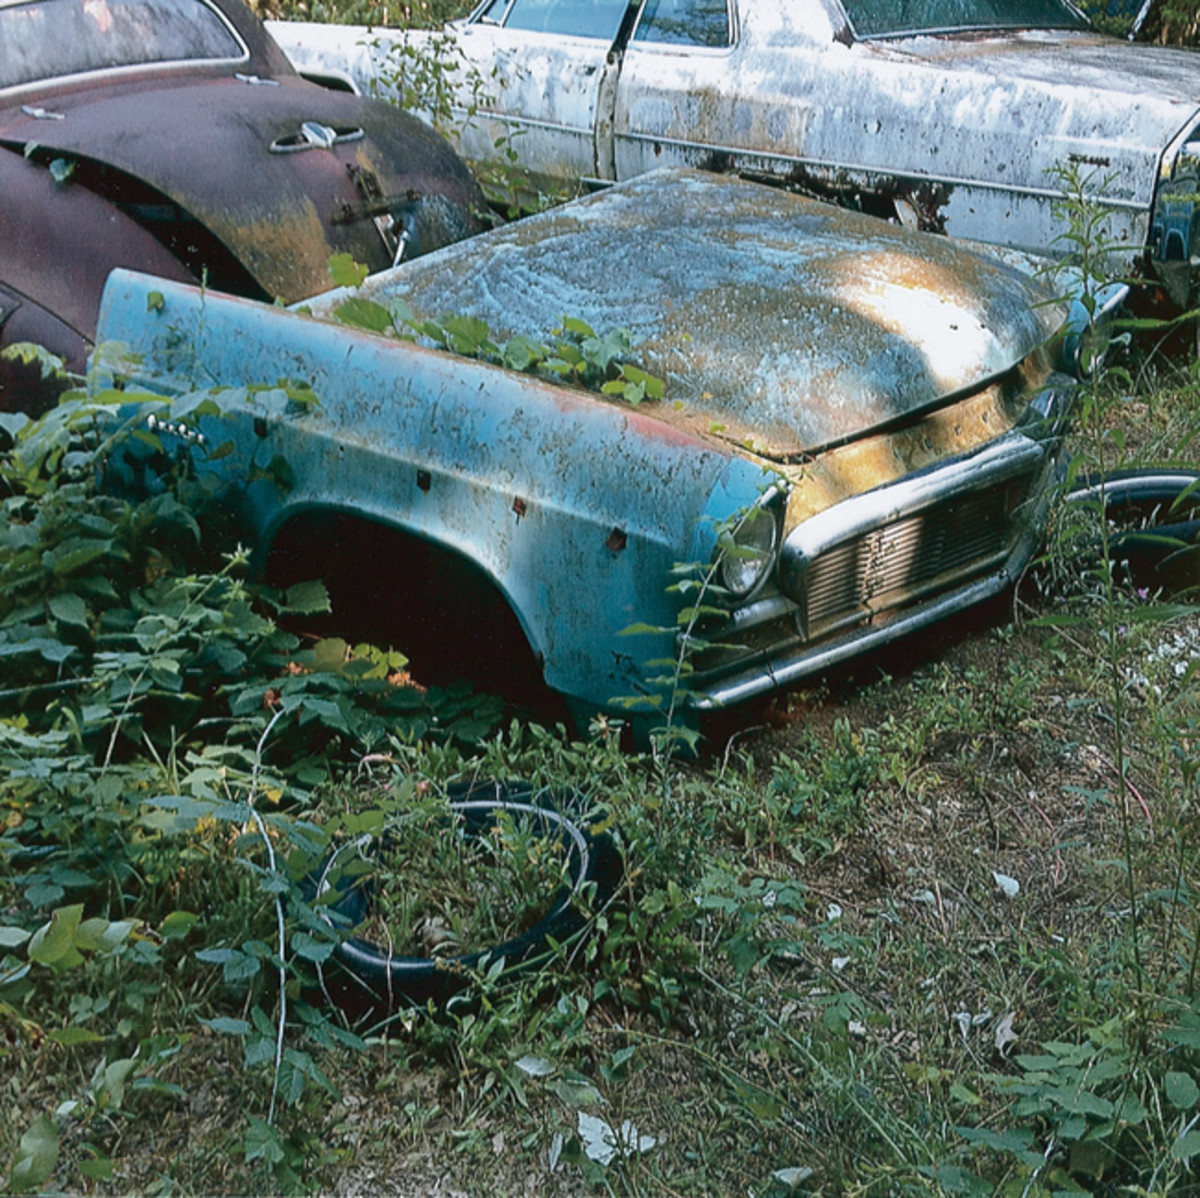 This moss-covered 1956 Chrysler New Yorker front clip remains in donor-quality condition, but lying on the ground isn't helping its preservation.